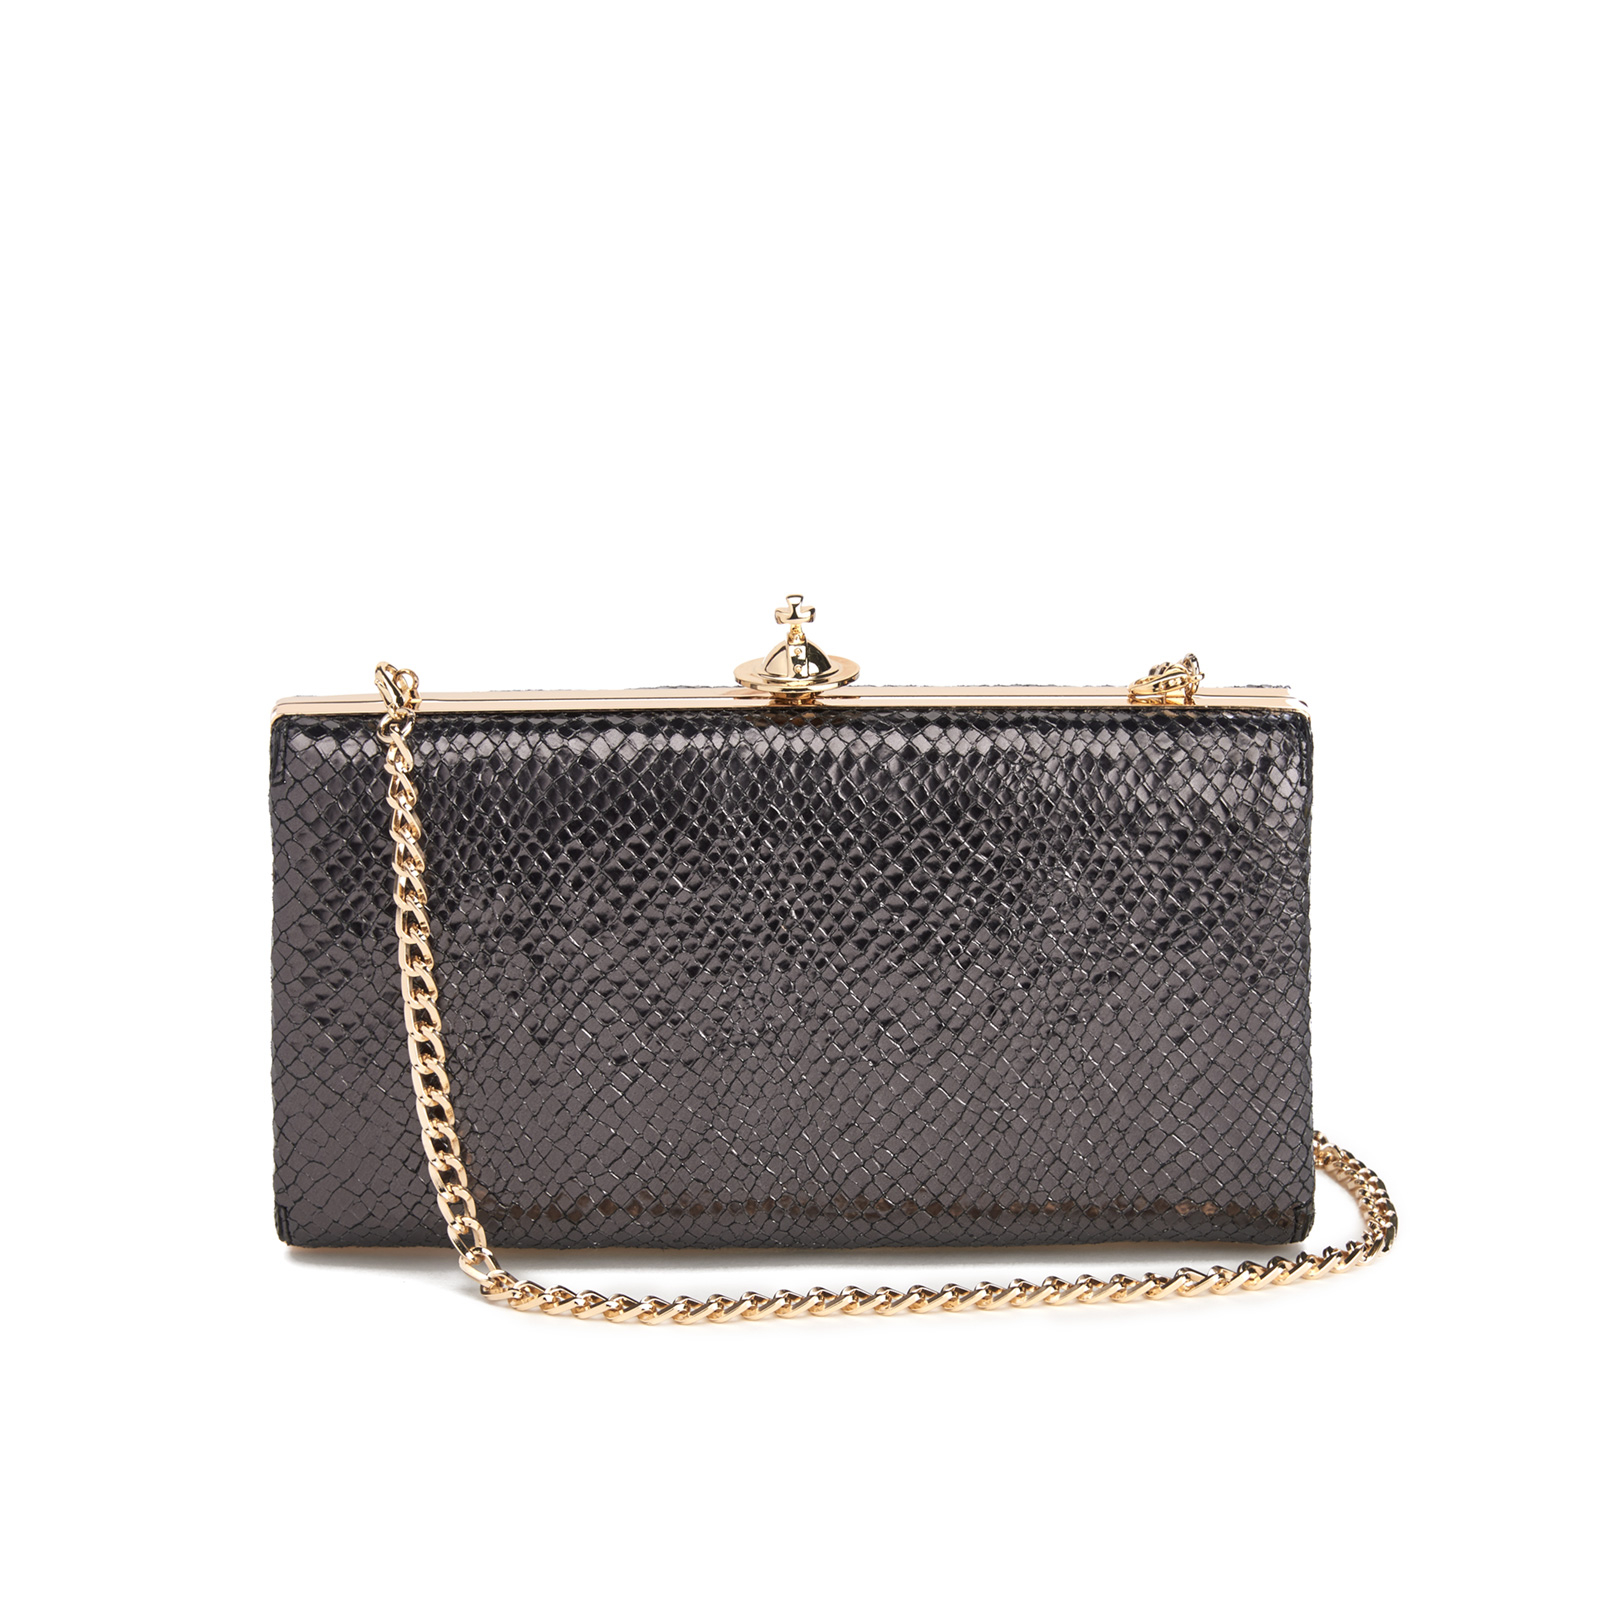 61aa34c2b0 Vivienne Westwood Women's Verona Metallic Leather Large Clutch Bag with  Chain - Black - Free UK Delivery over £50